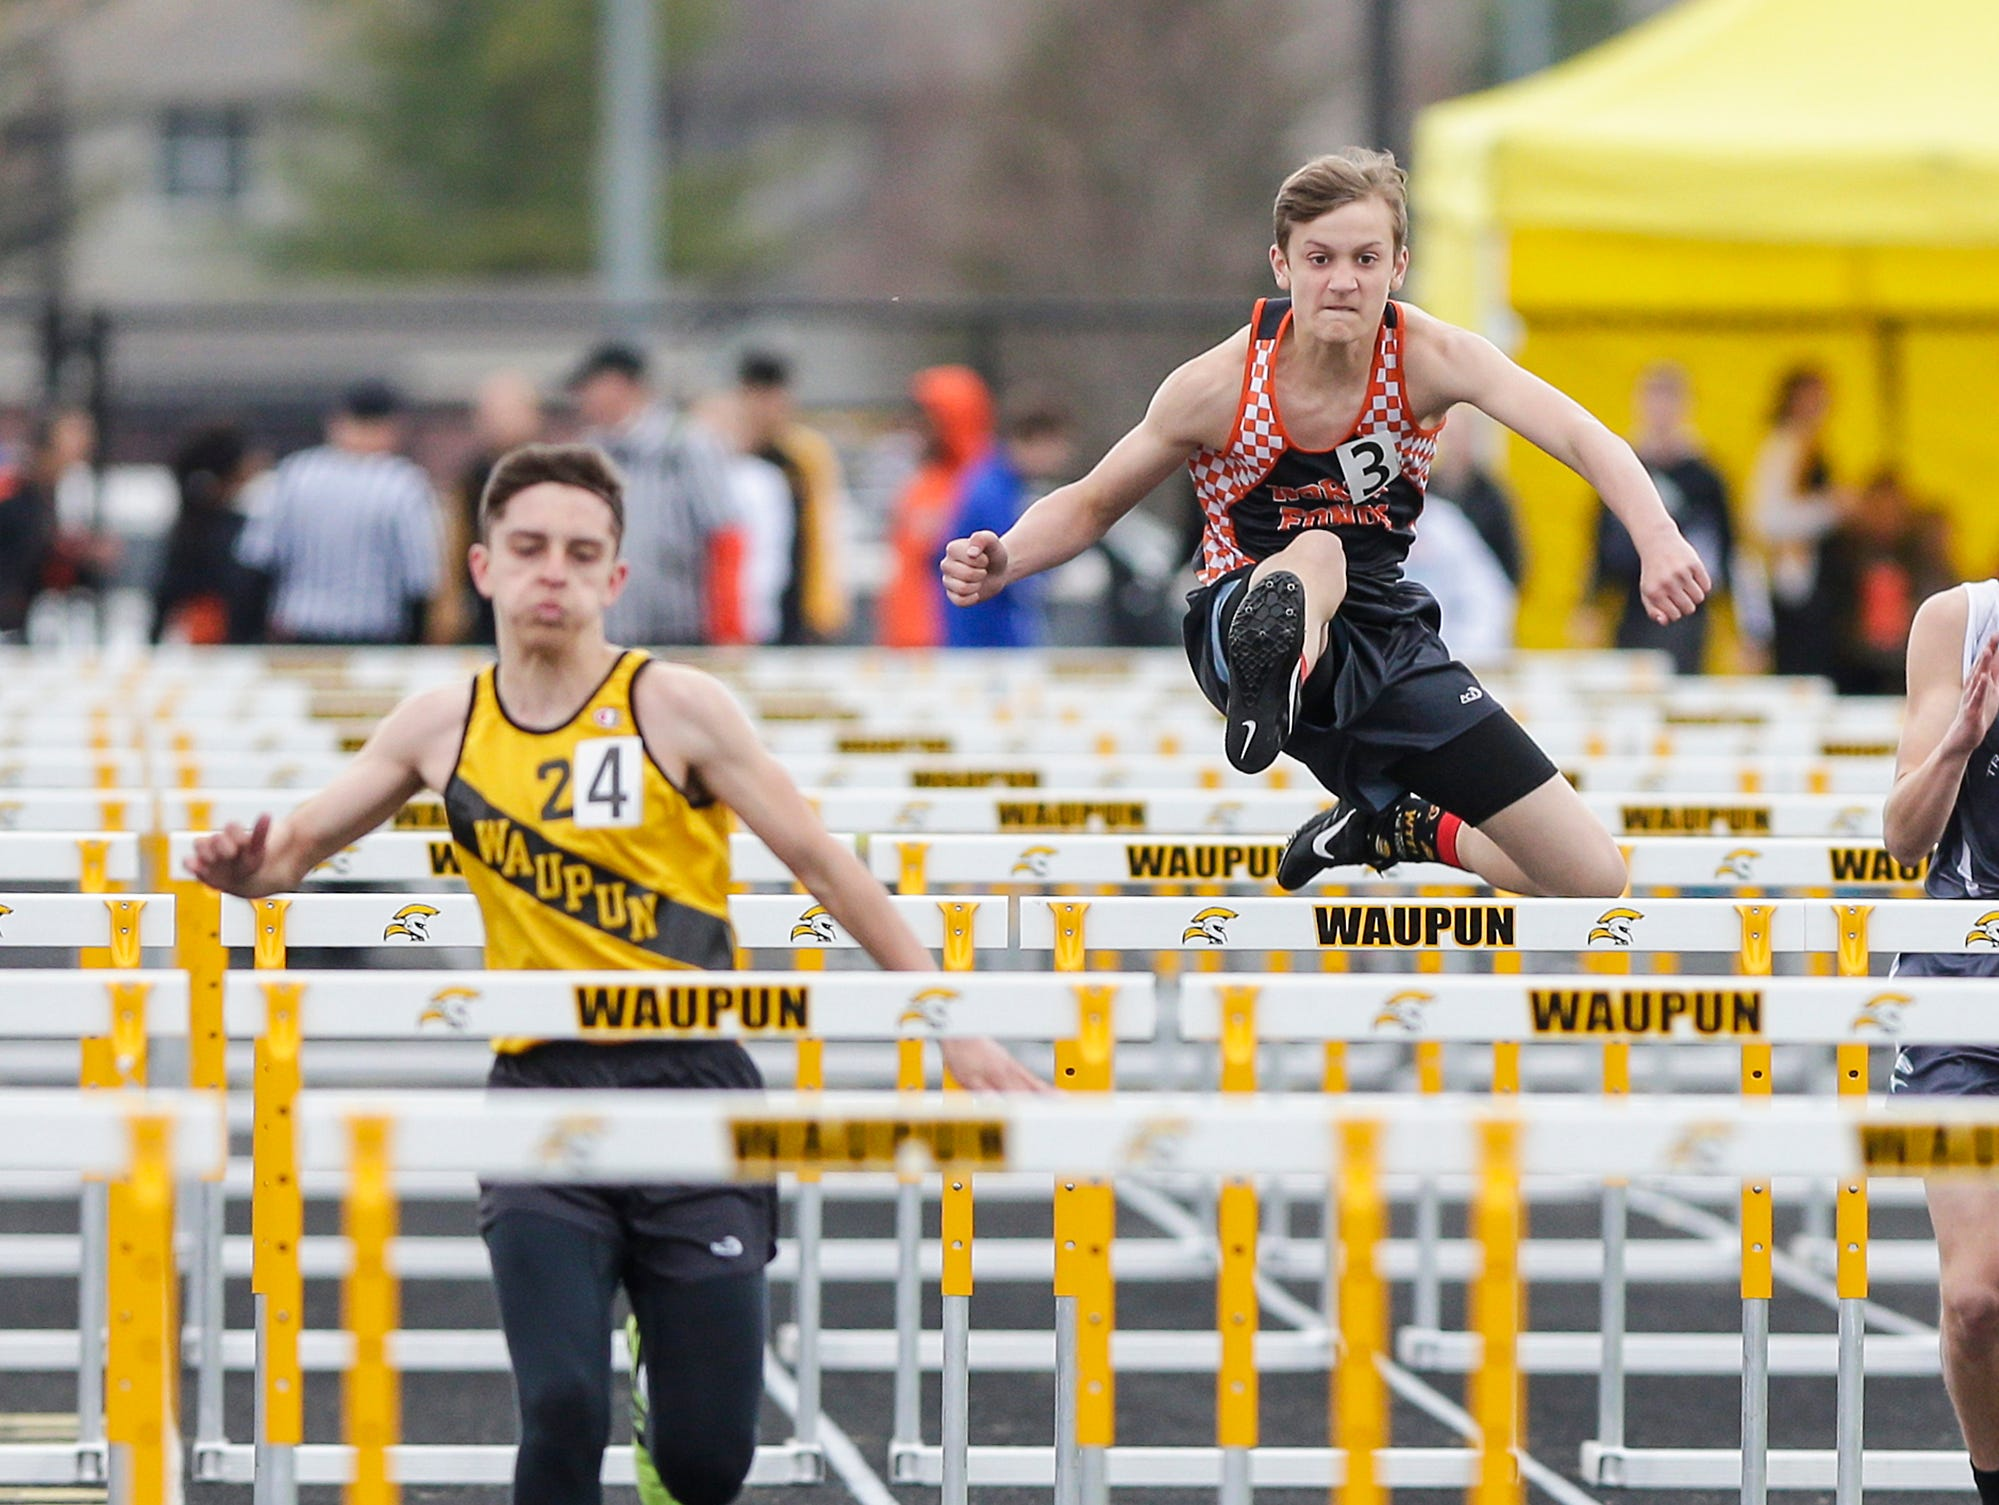 Jacob Matoushek of Waupun High School (4) and Kayden Biwer of North Fond du Lac High School compete in the 110 meter hurdles Friday, May 3, 2019 at the Waupun High School Invitational track and field meet. Doug Raflik/USA TODAY NETWORK-Wisconsin